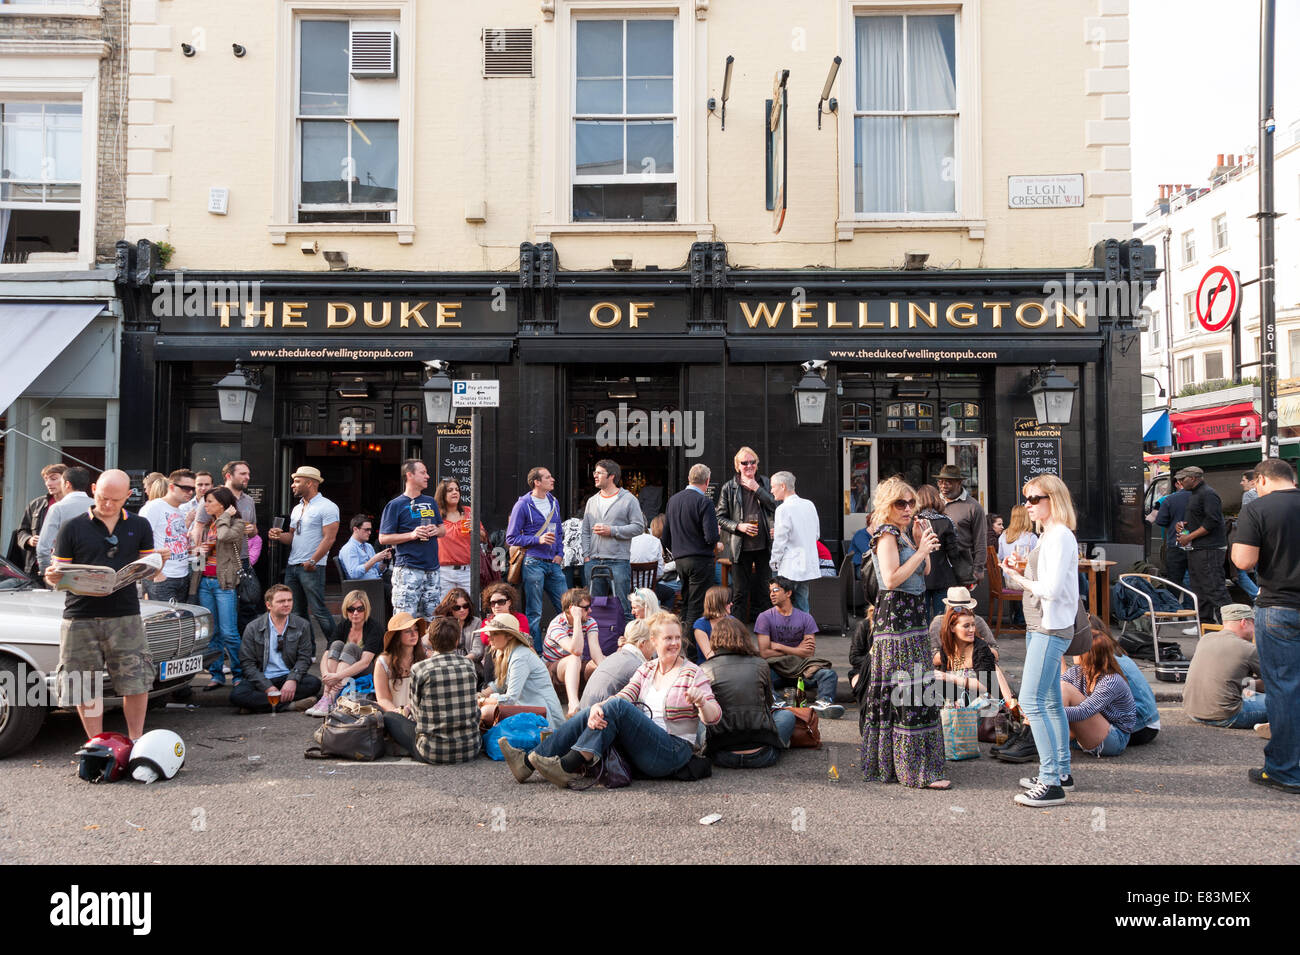 Duke of wellington pub soho